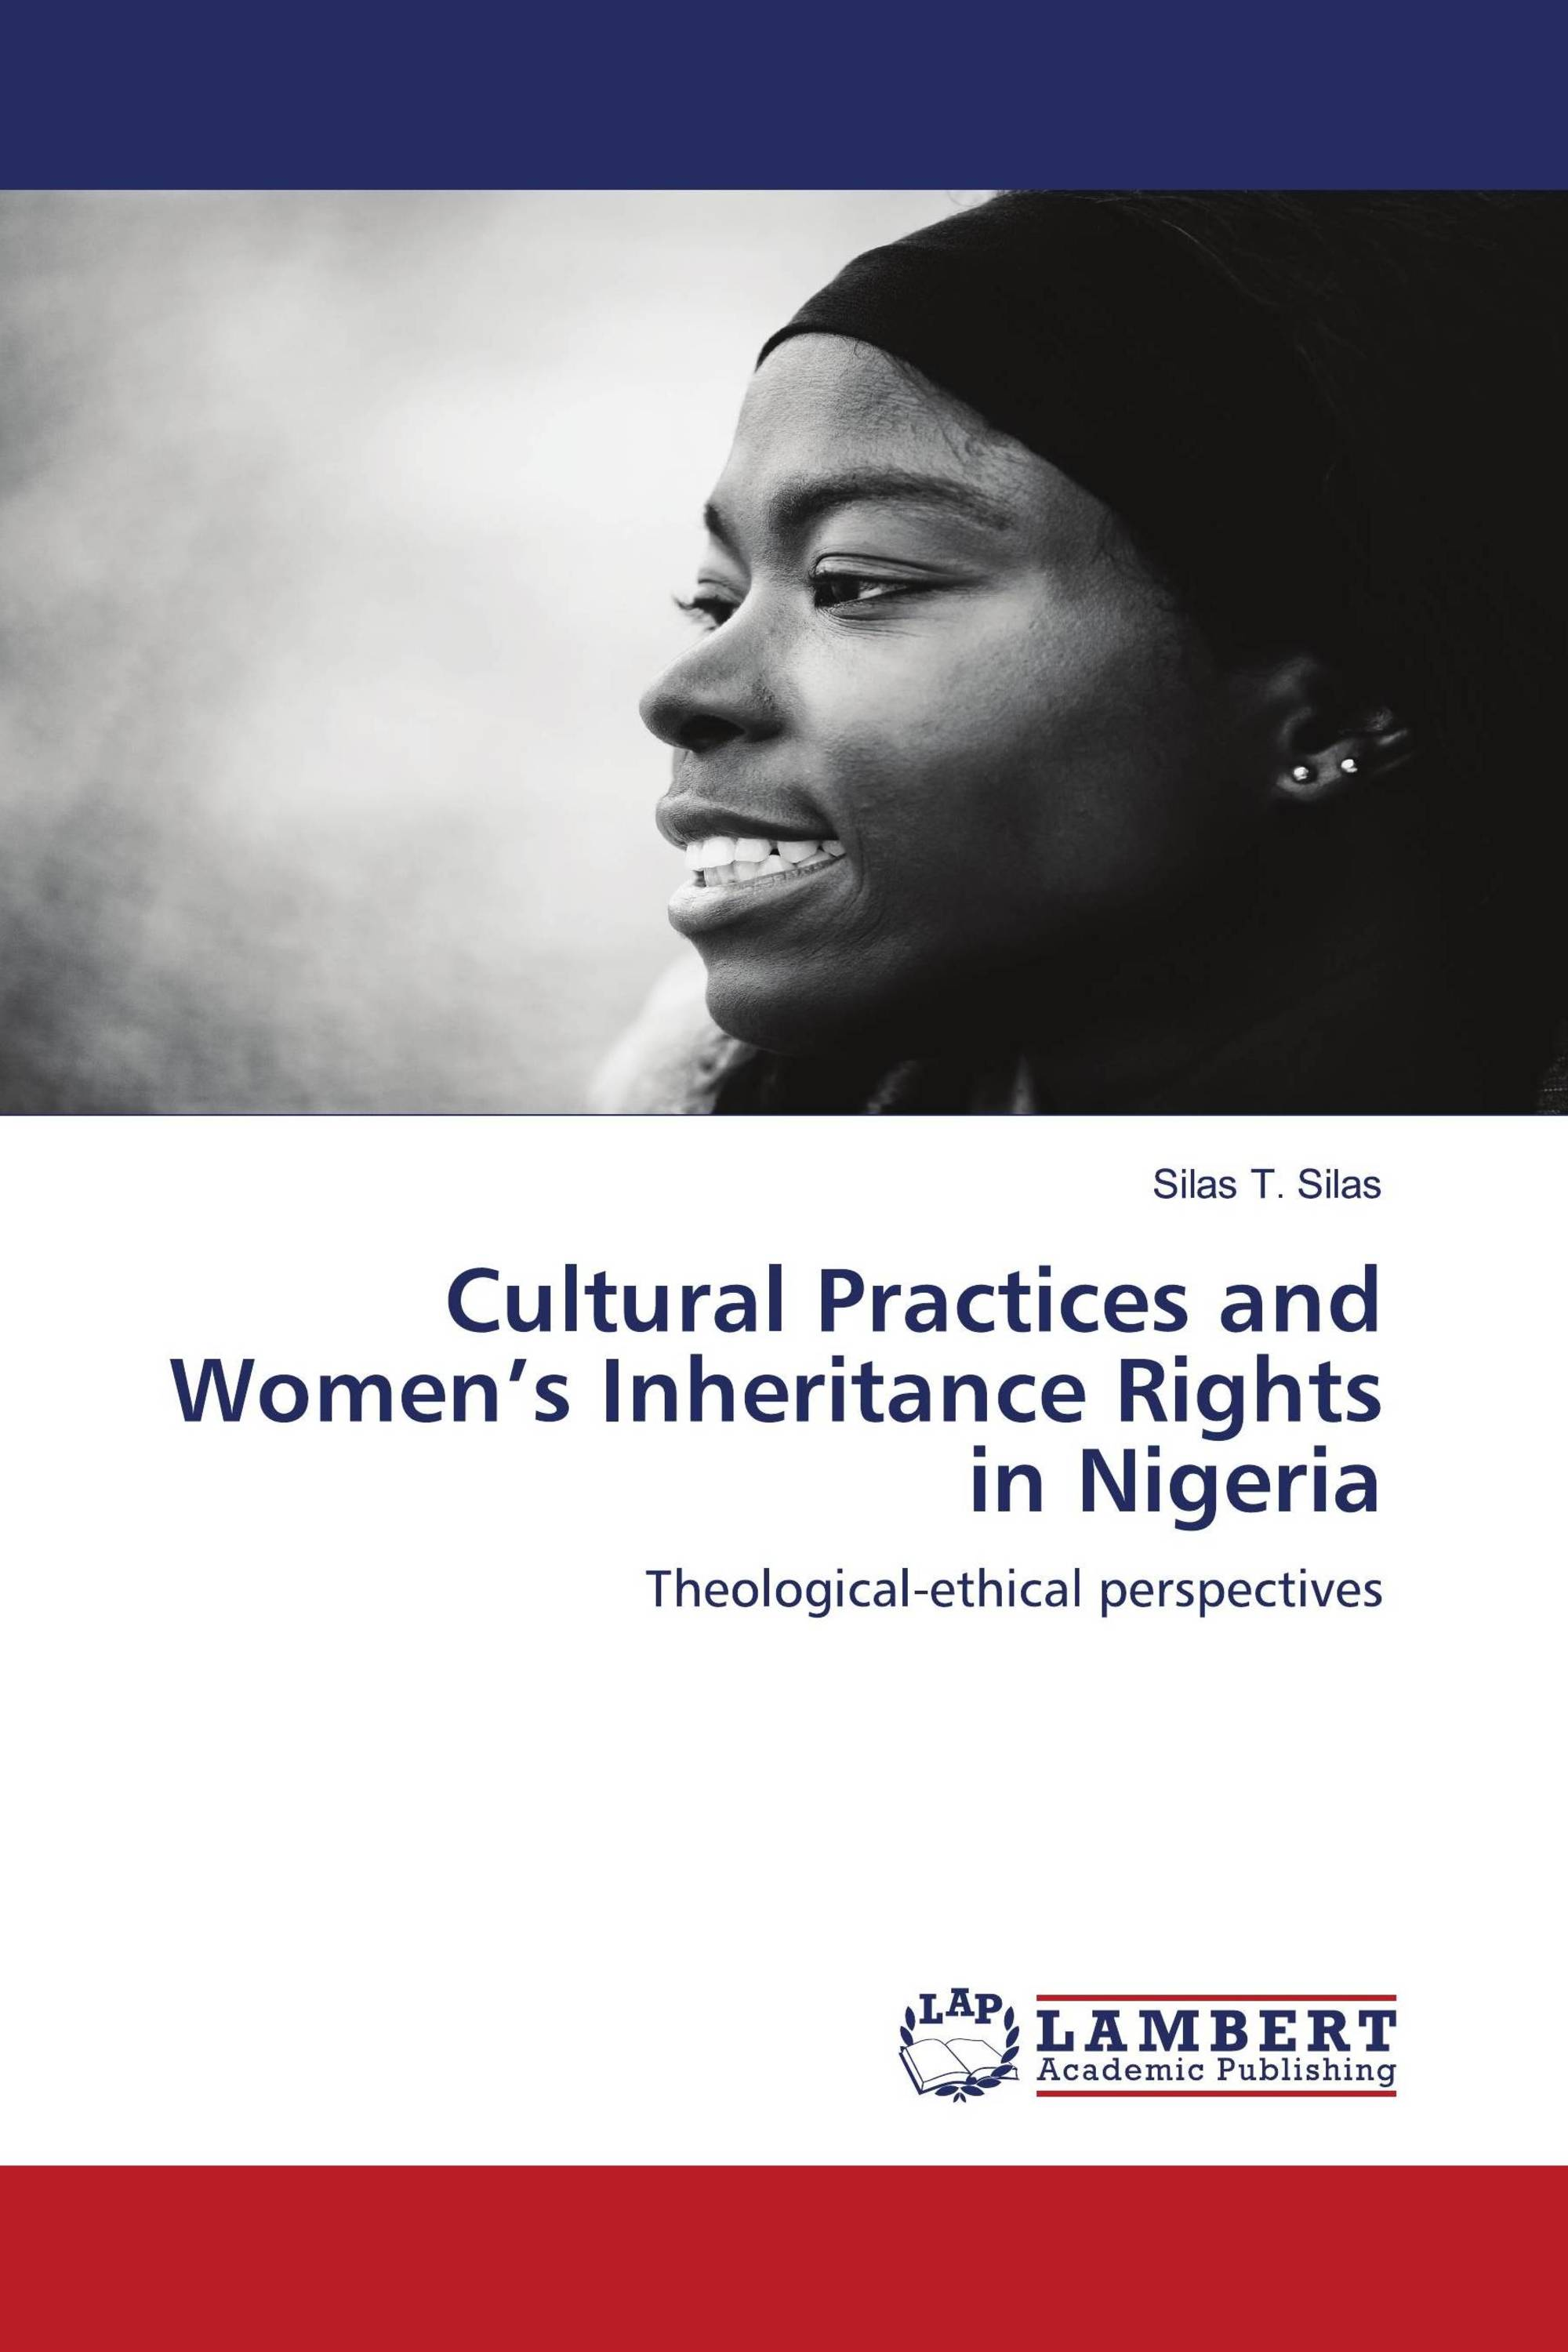 Cultural Practices and Women's Inheritance Rights in Nigeria